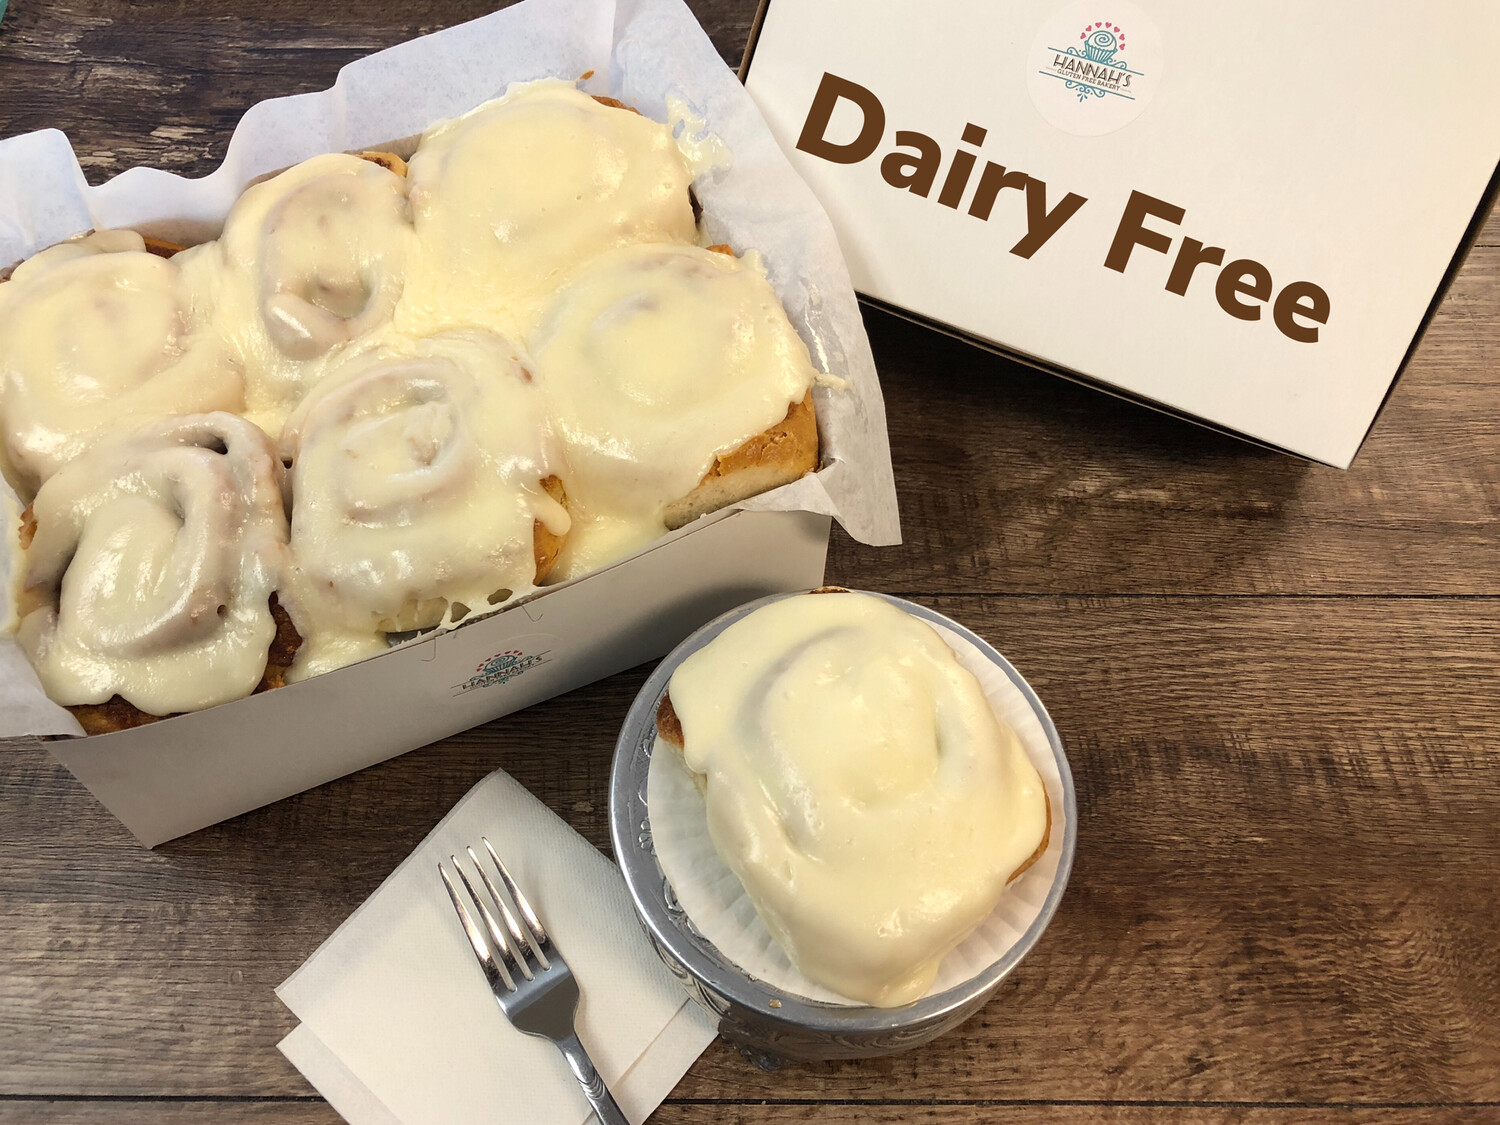 FAMOUS Dairy Free Cinnamon Rolls (6 Pack)